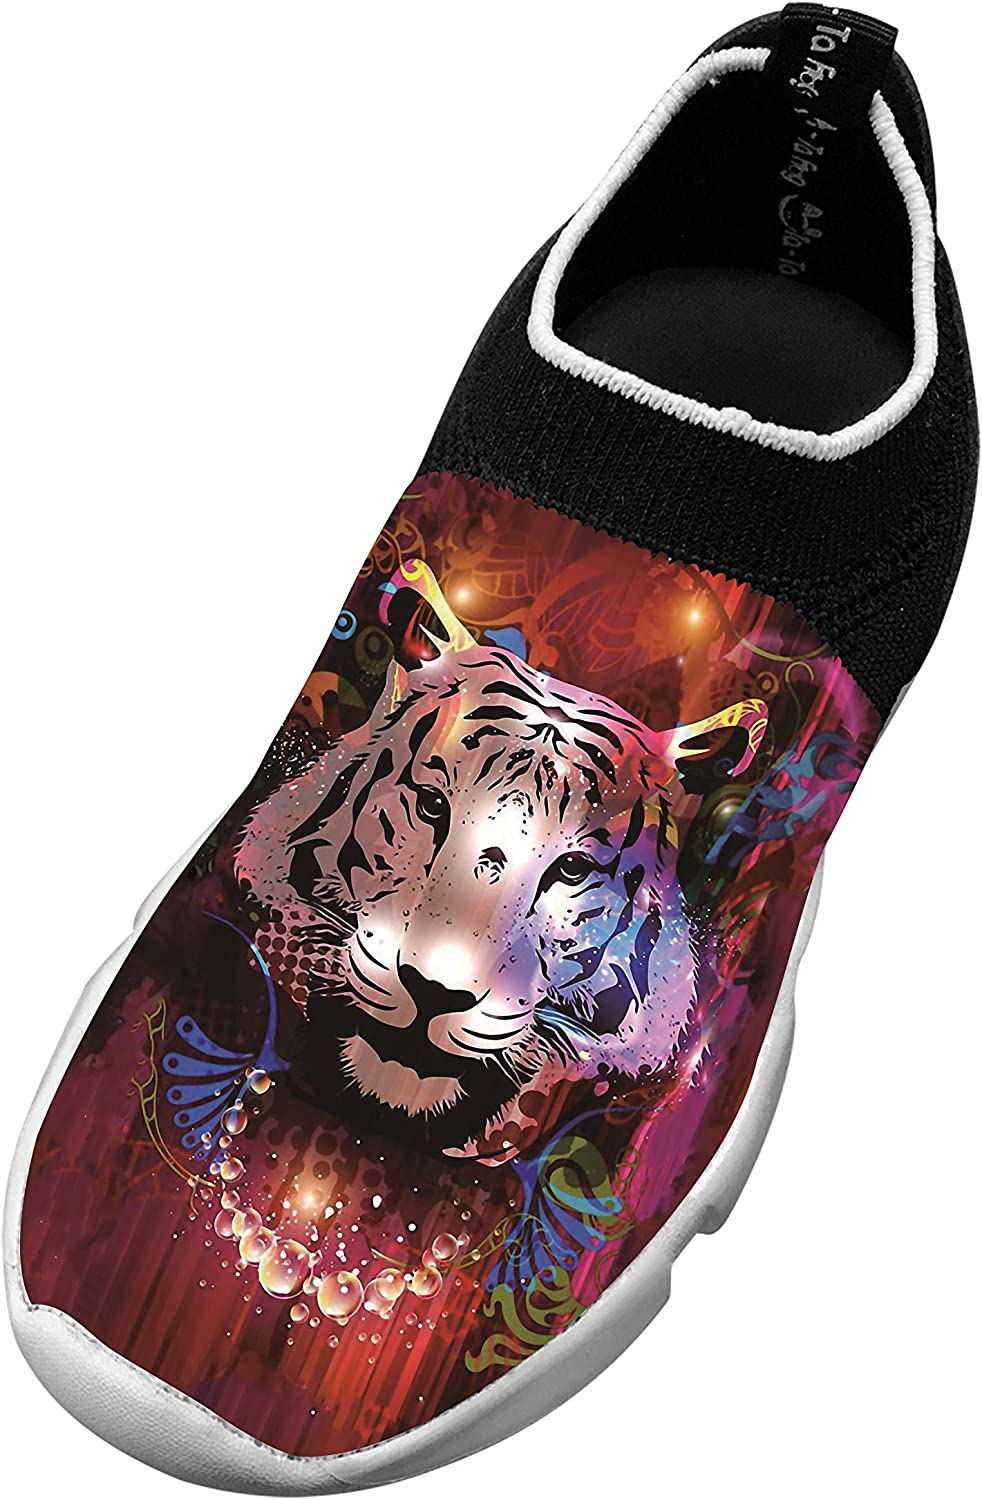 New Funny Flywire Knitting Jogging Shoes 3D Personalized With Tiger face For Unisex Kid